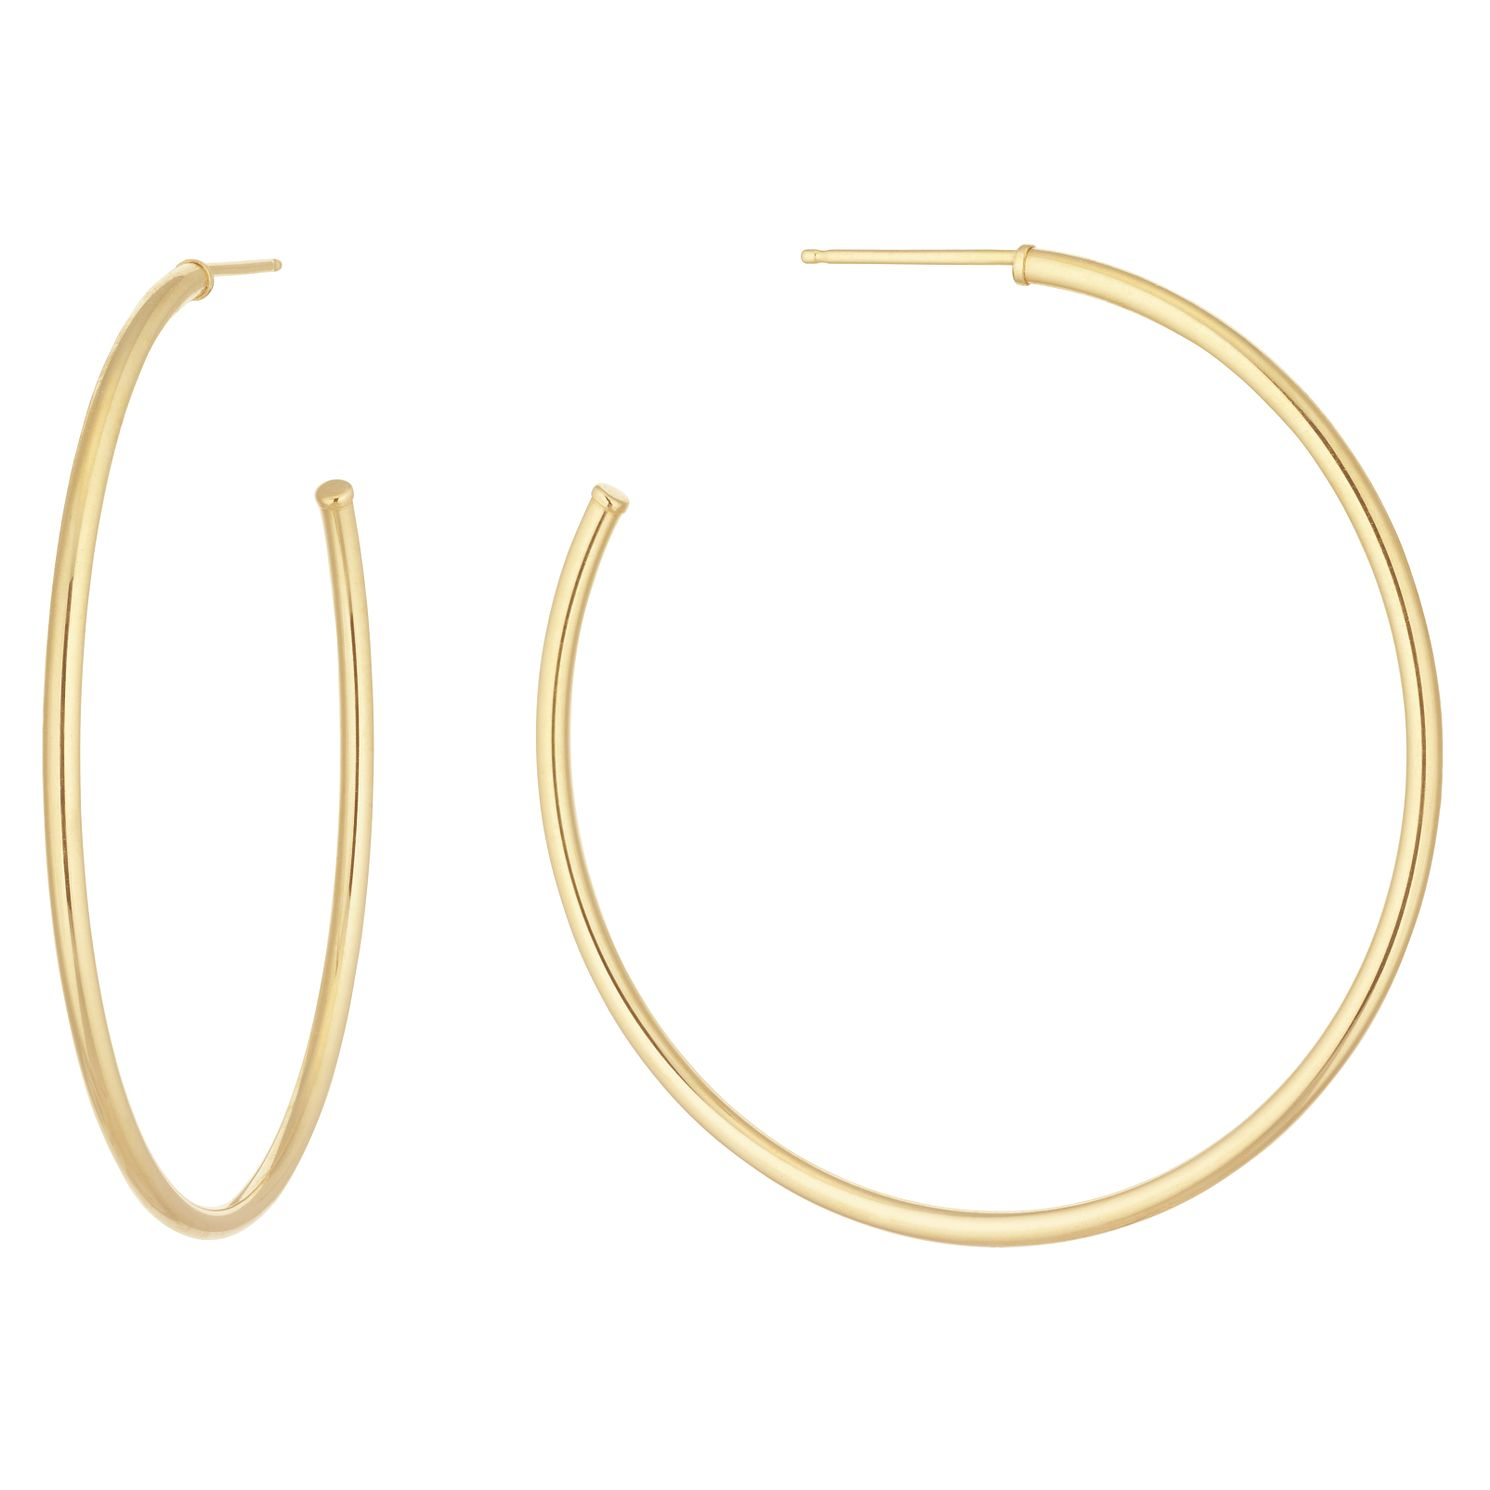 9ct Yellow Gold Skinny 37mm Hoop Earrings - Product number 1072404